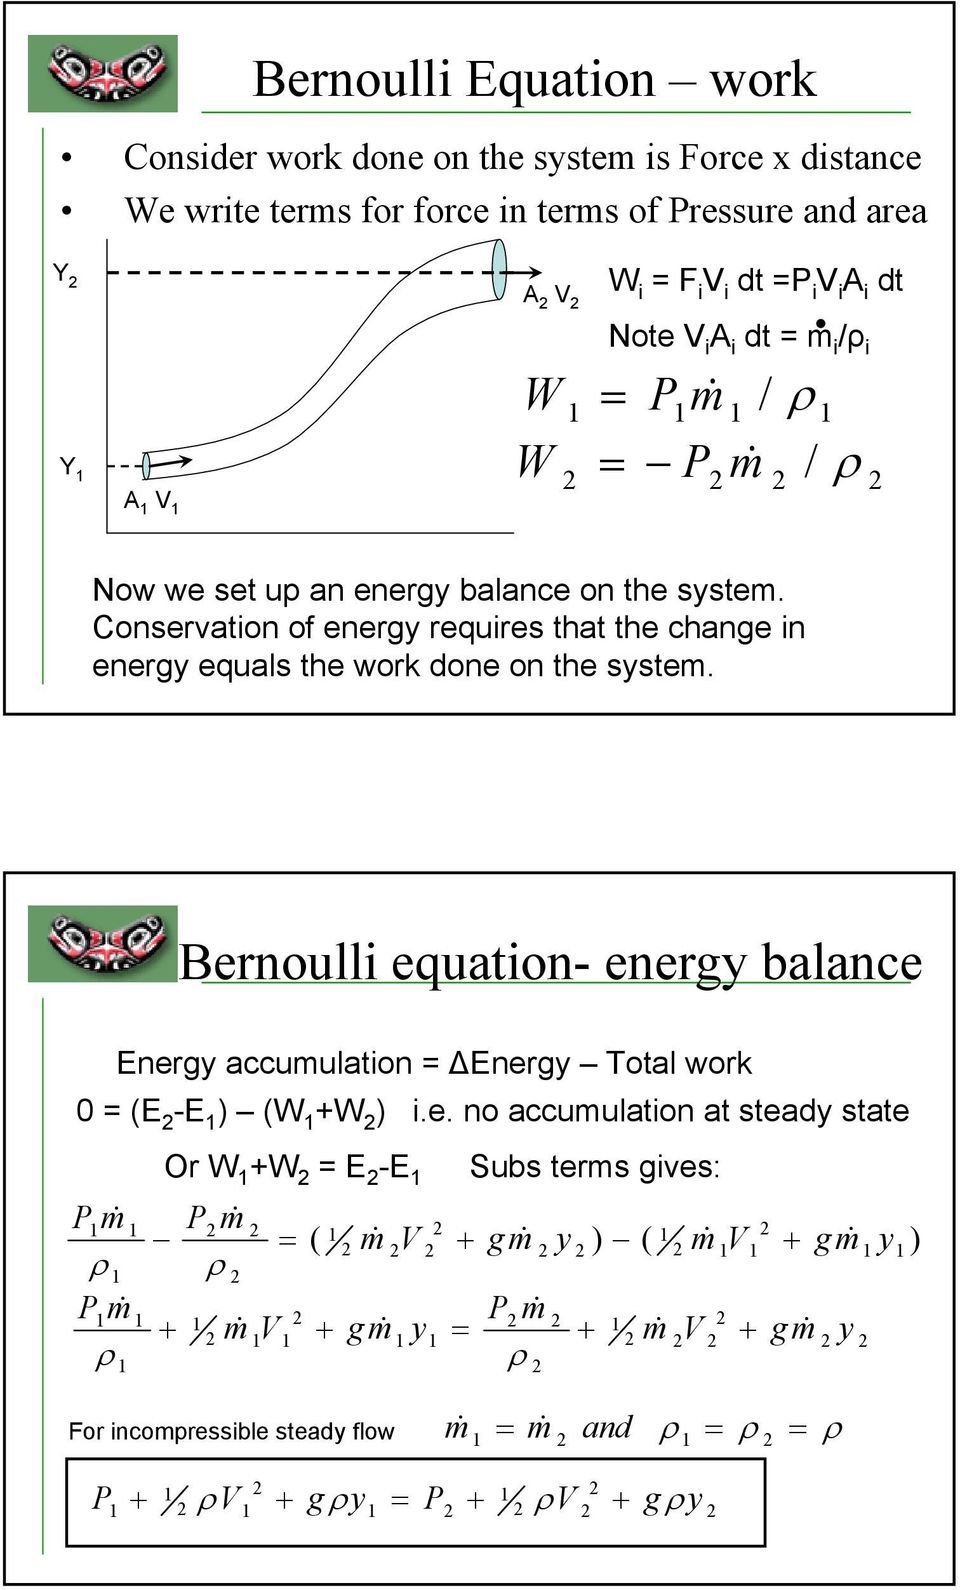 Conservation of energy requires that the change in energy equals the work done on the system.